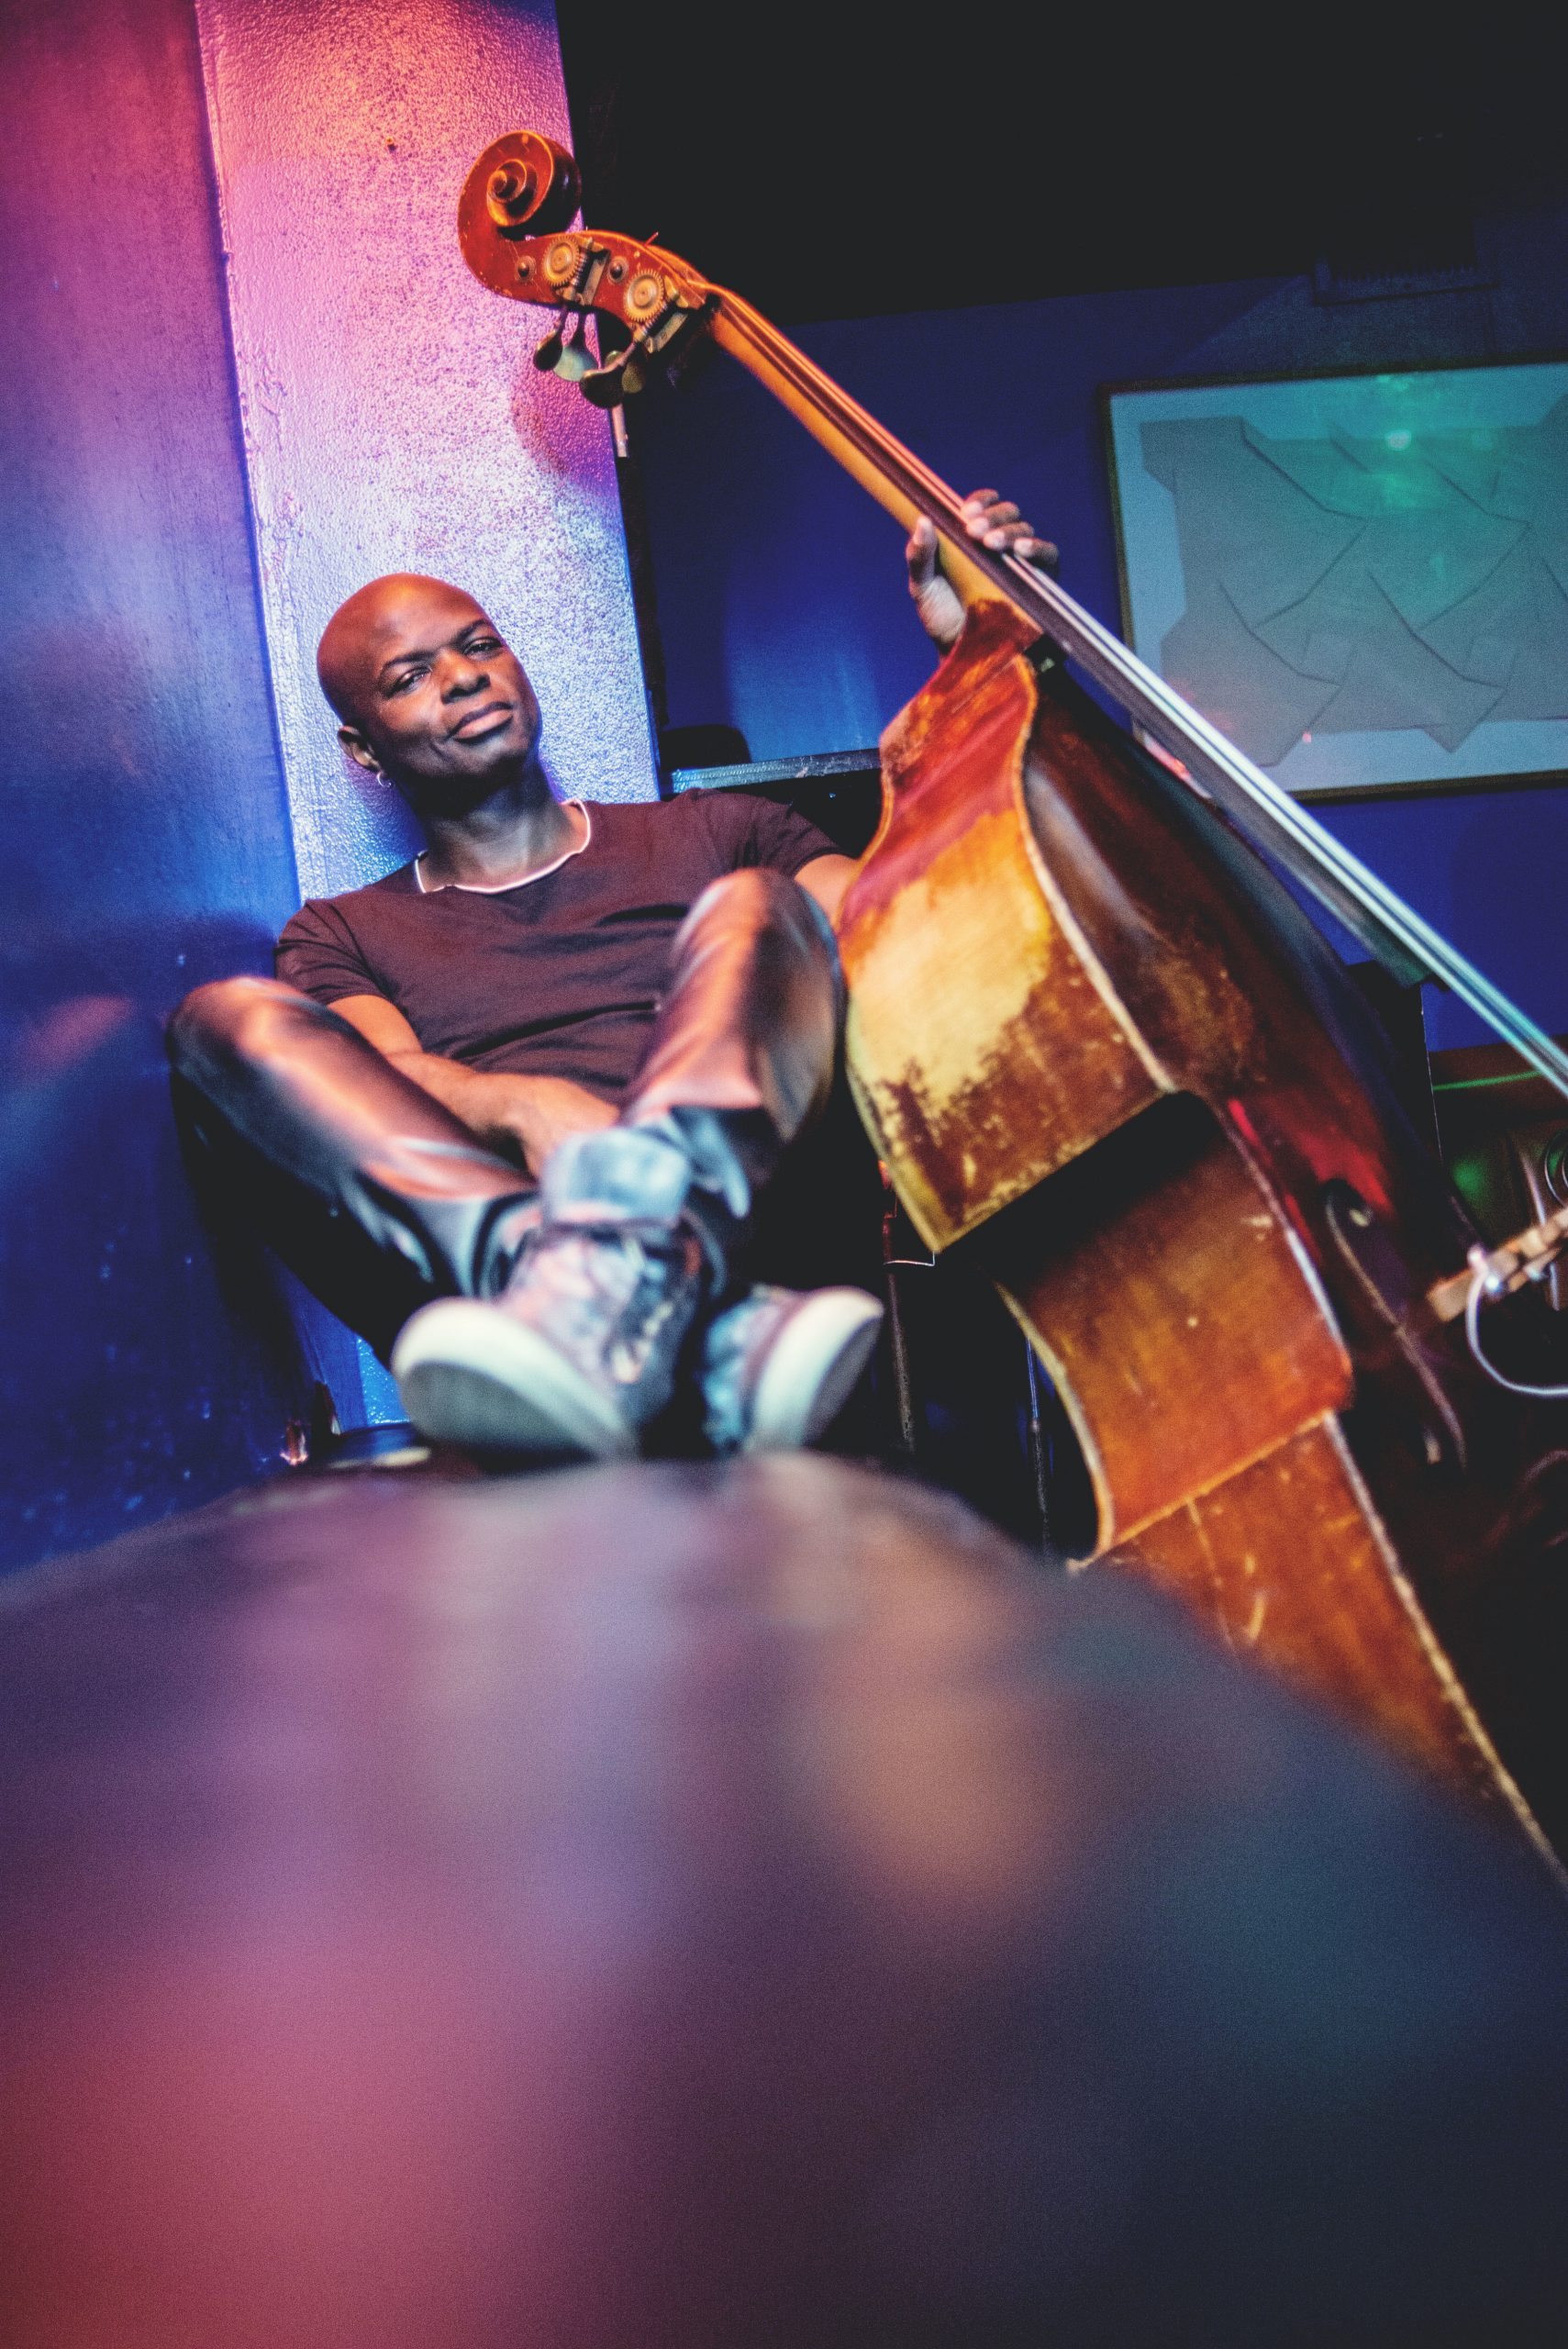 EVENT ANNOUNCEMENT: Jazz Funk Bassist Richie Goods & The Goods Project Announce Upcoming Tour Sponsored by South Arts Jazz Road Touring Grant